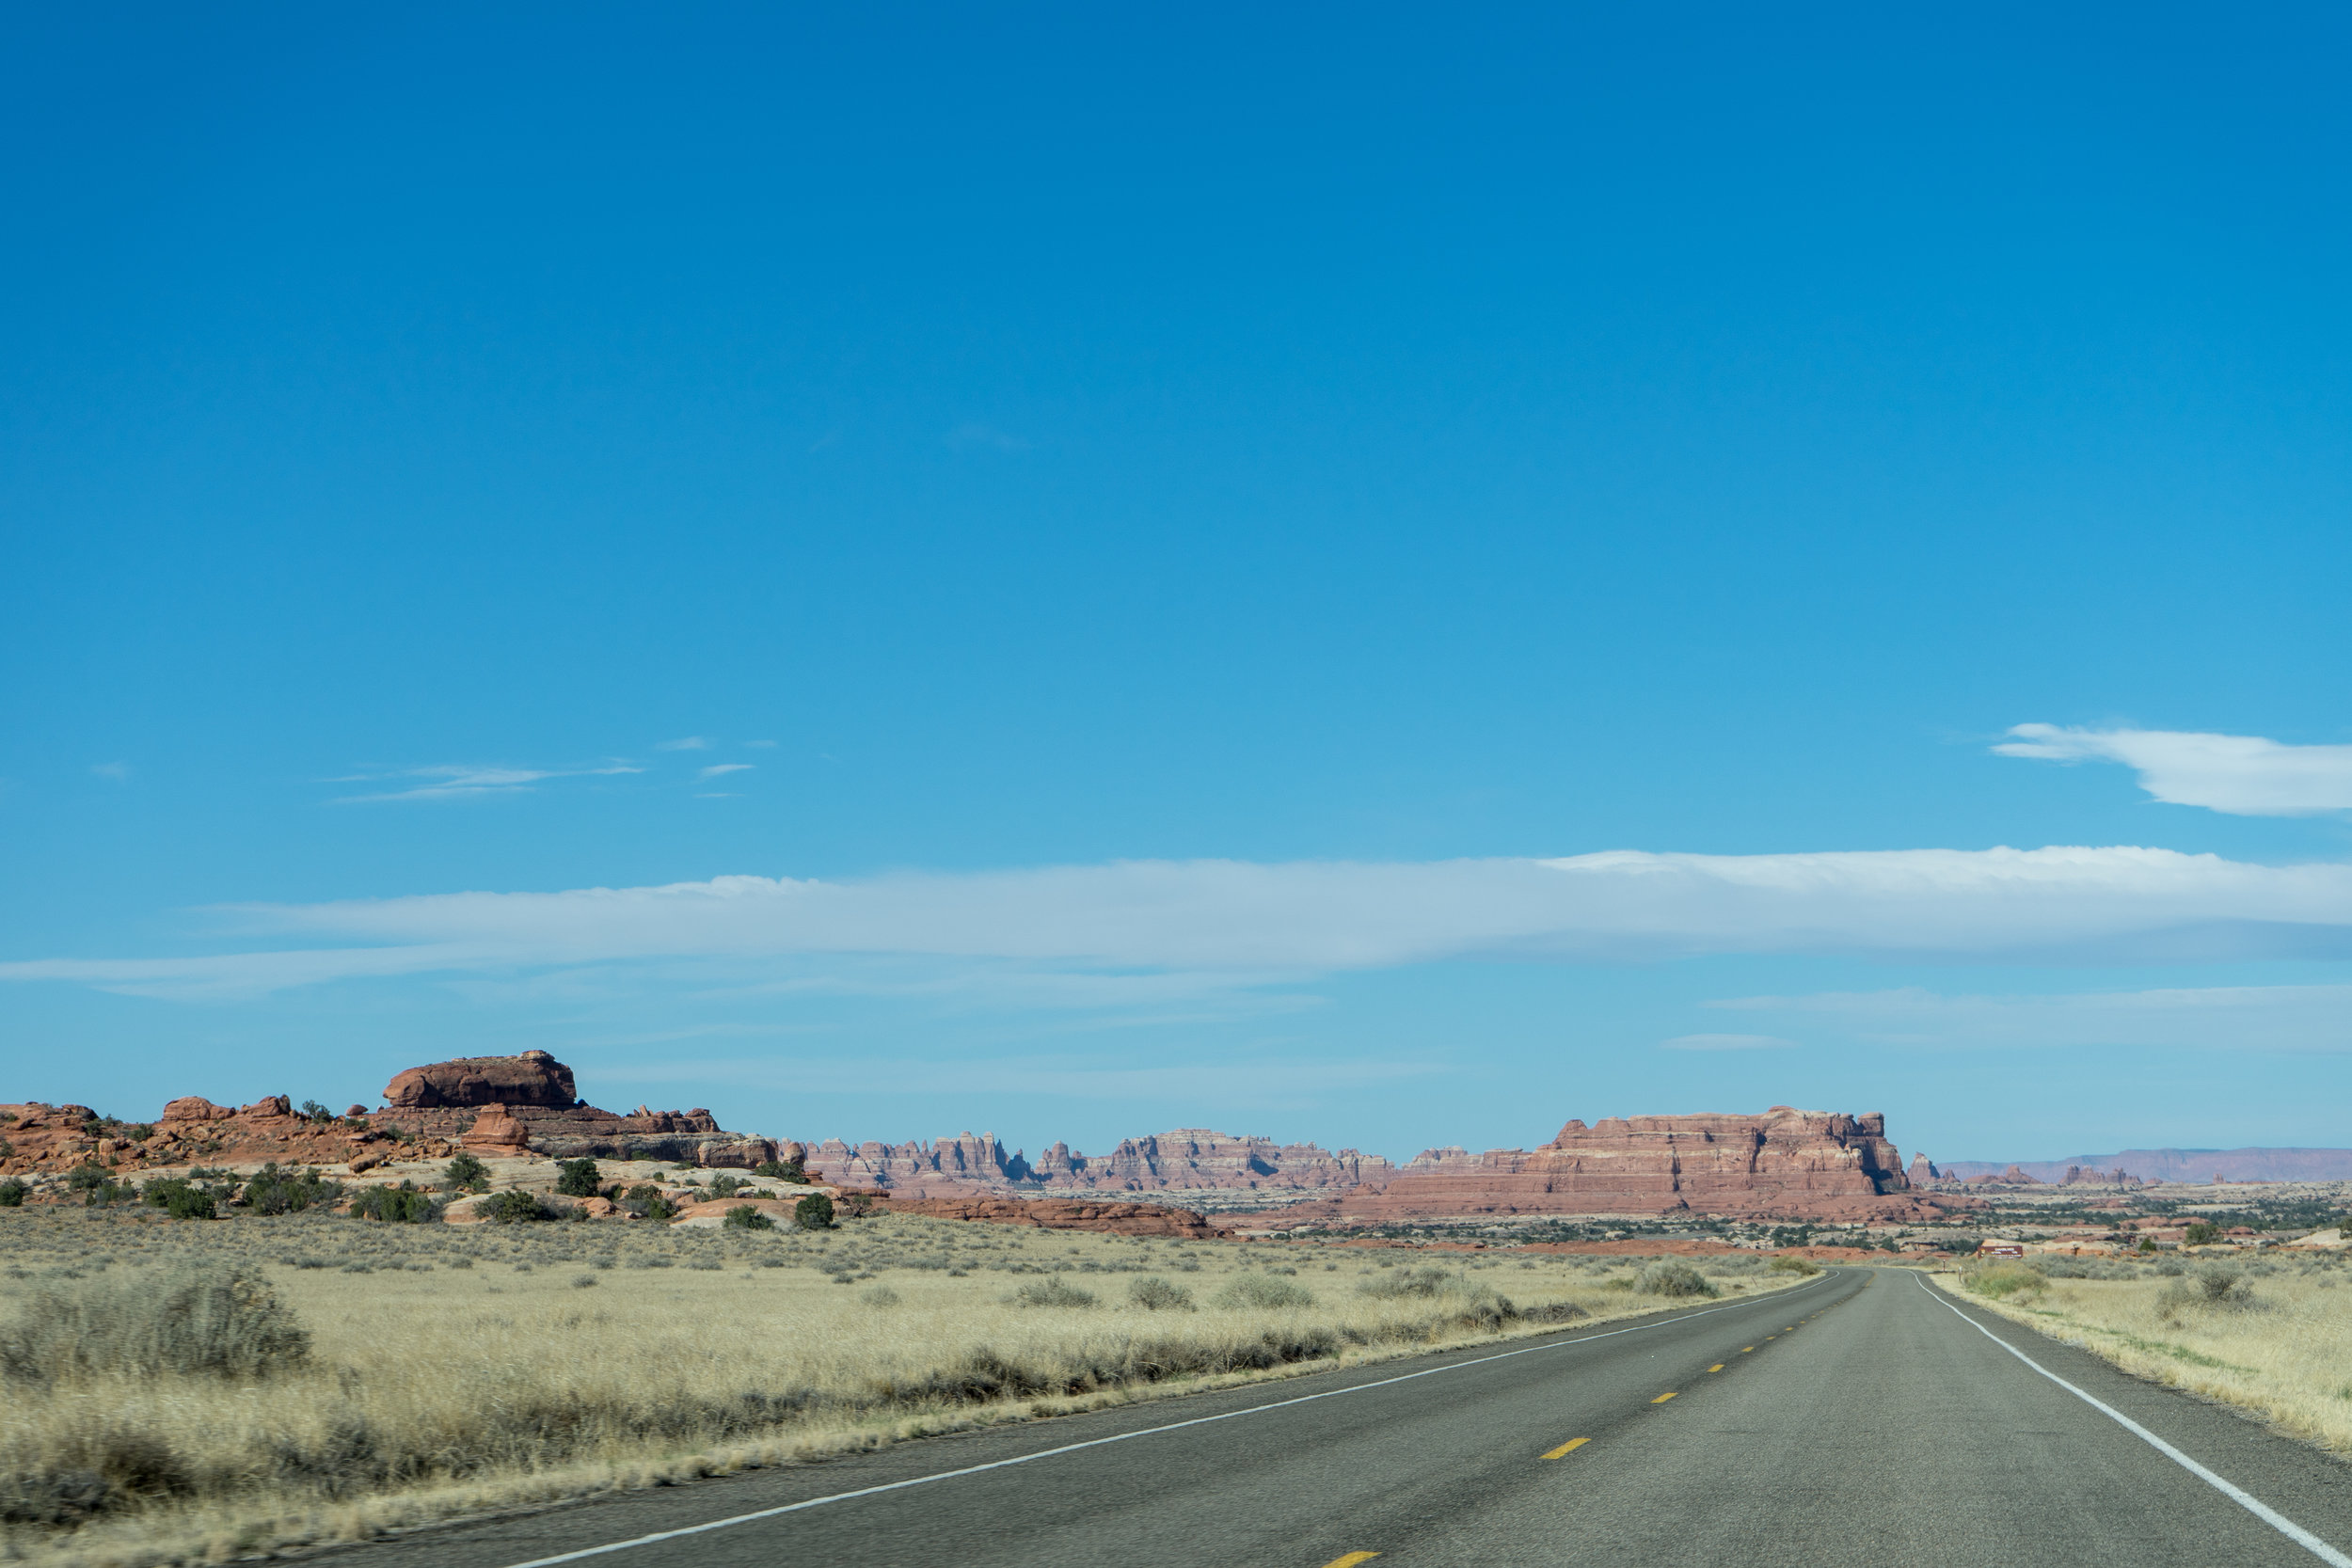 The drive into the Needles